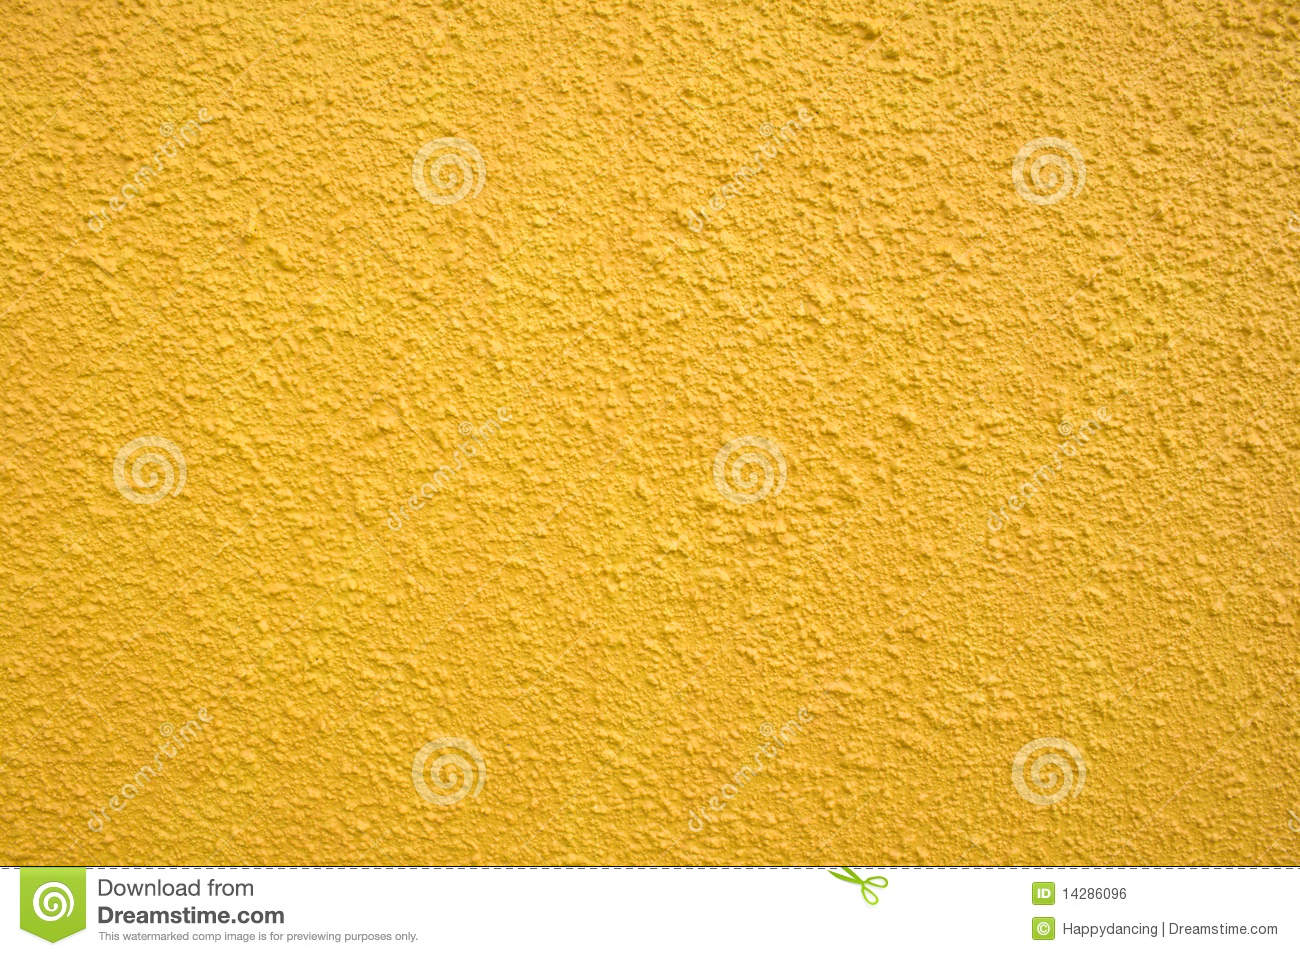 Yellow wall texture stock photo. Image of abstract, colour - 14286096